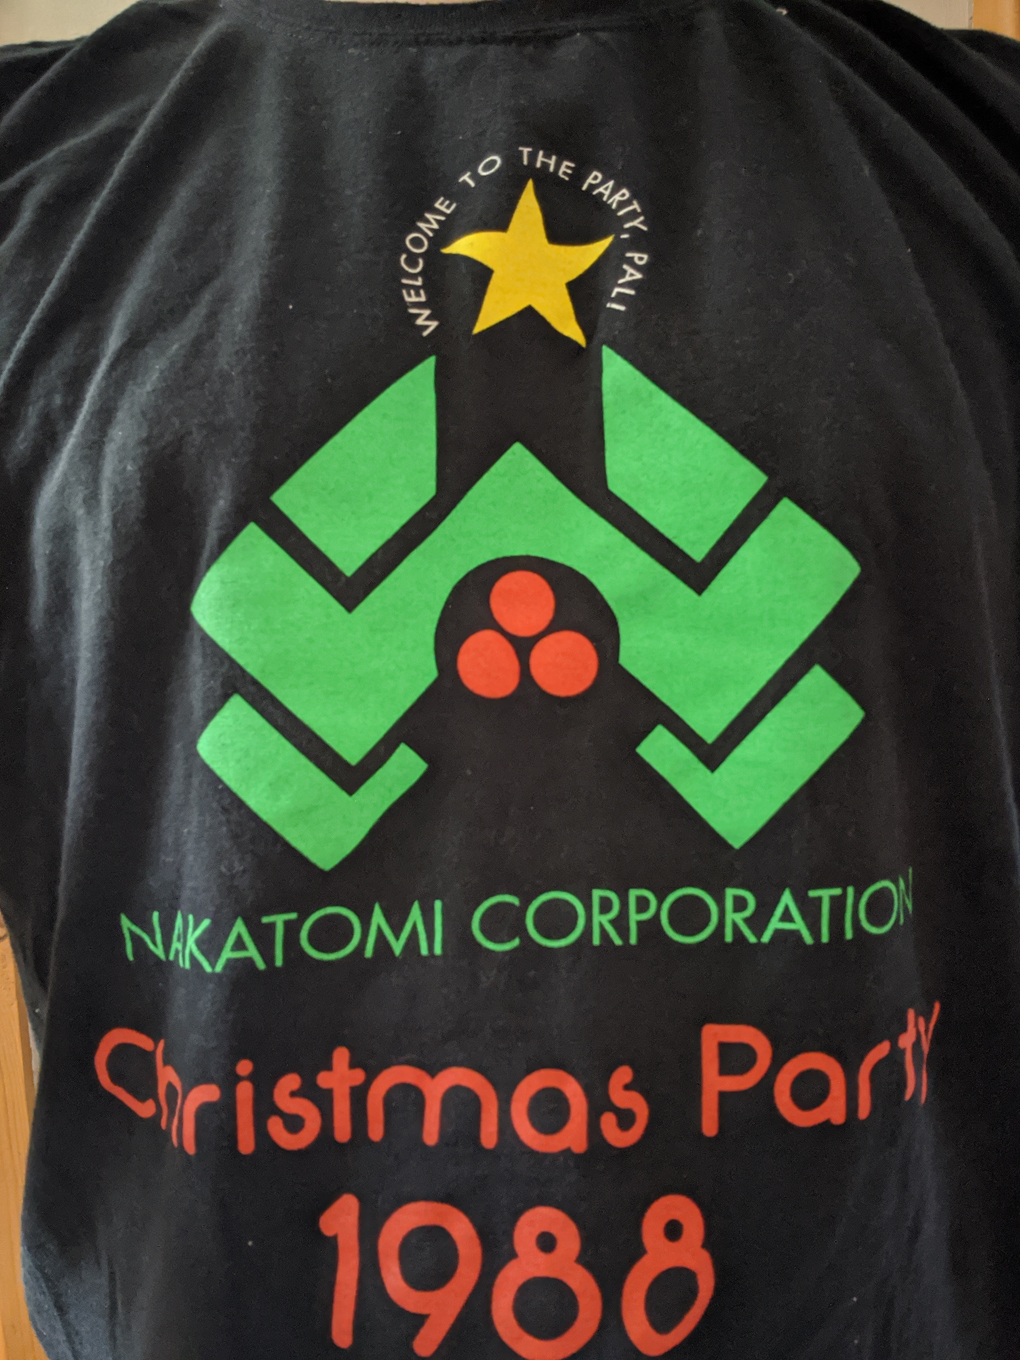 A photo of the nakatomo Christmas party 1988, a reference to the film Die Hard